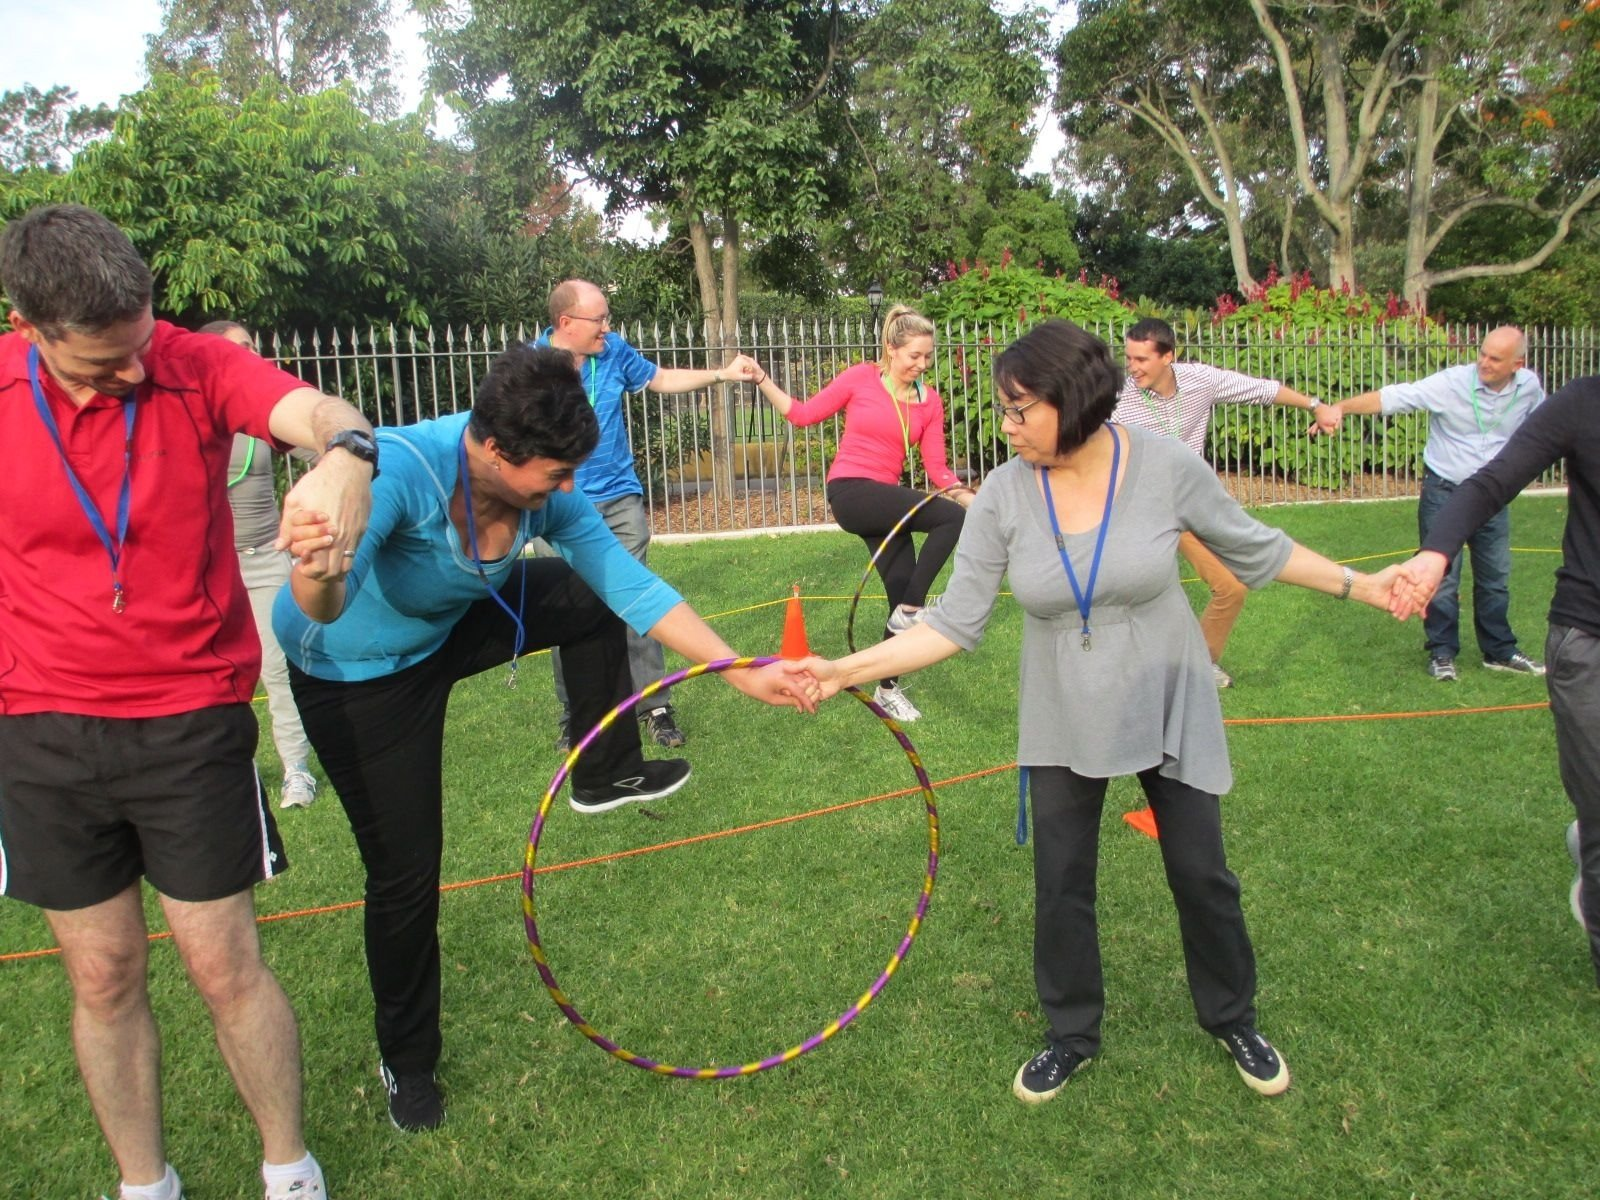 10 Pretty Ideas For Team Building Events outdoor team building outdoor team building activities olympics 2020